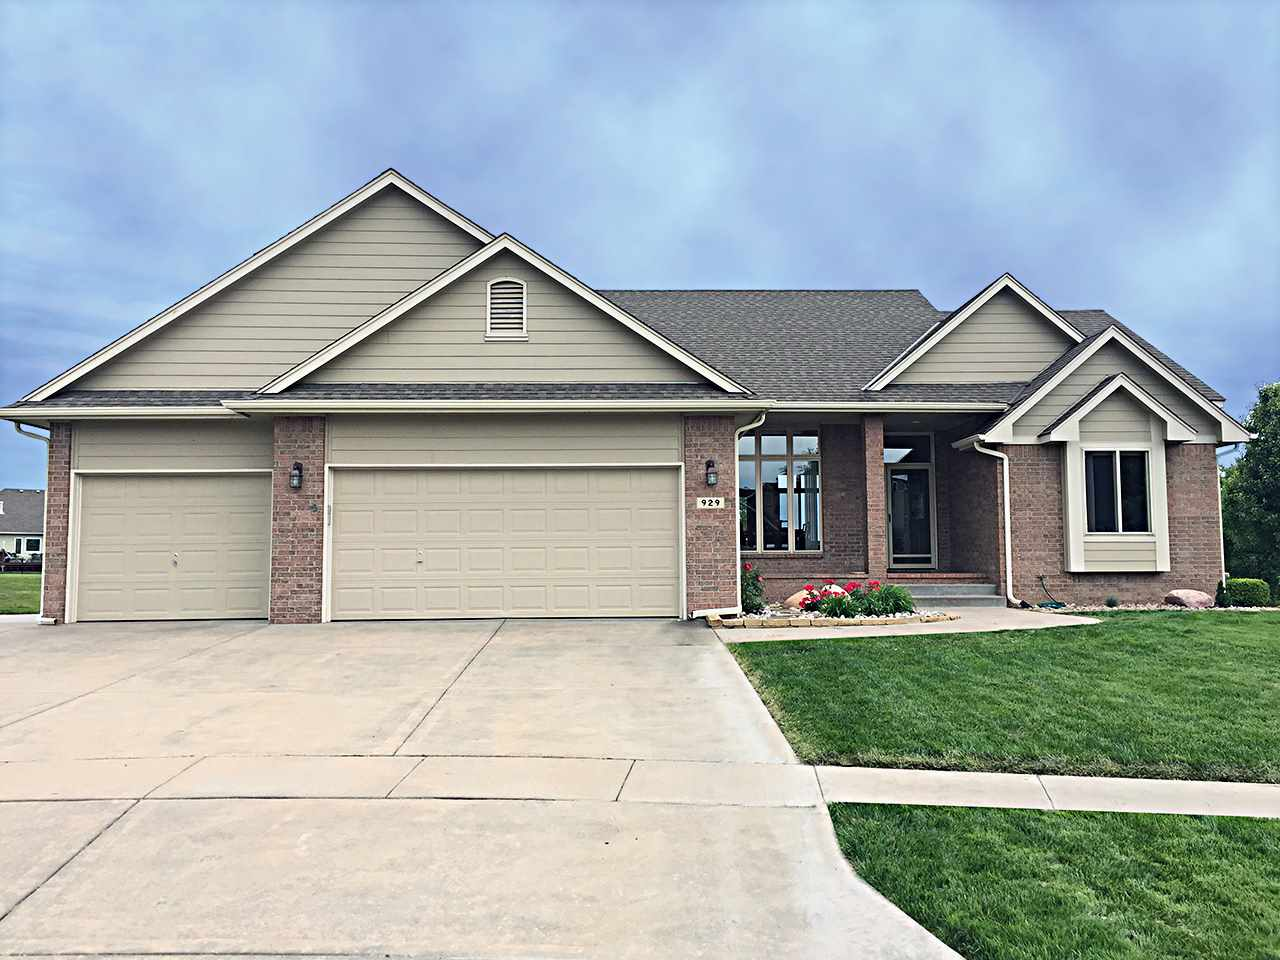 929 E Lost Hills Ct, Derby, KS 67037